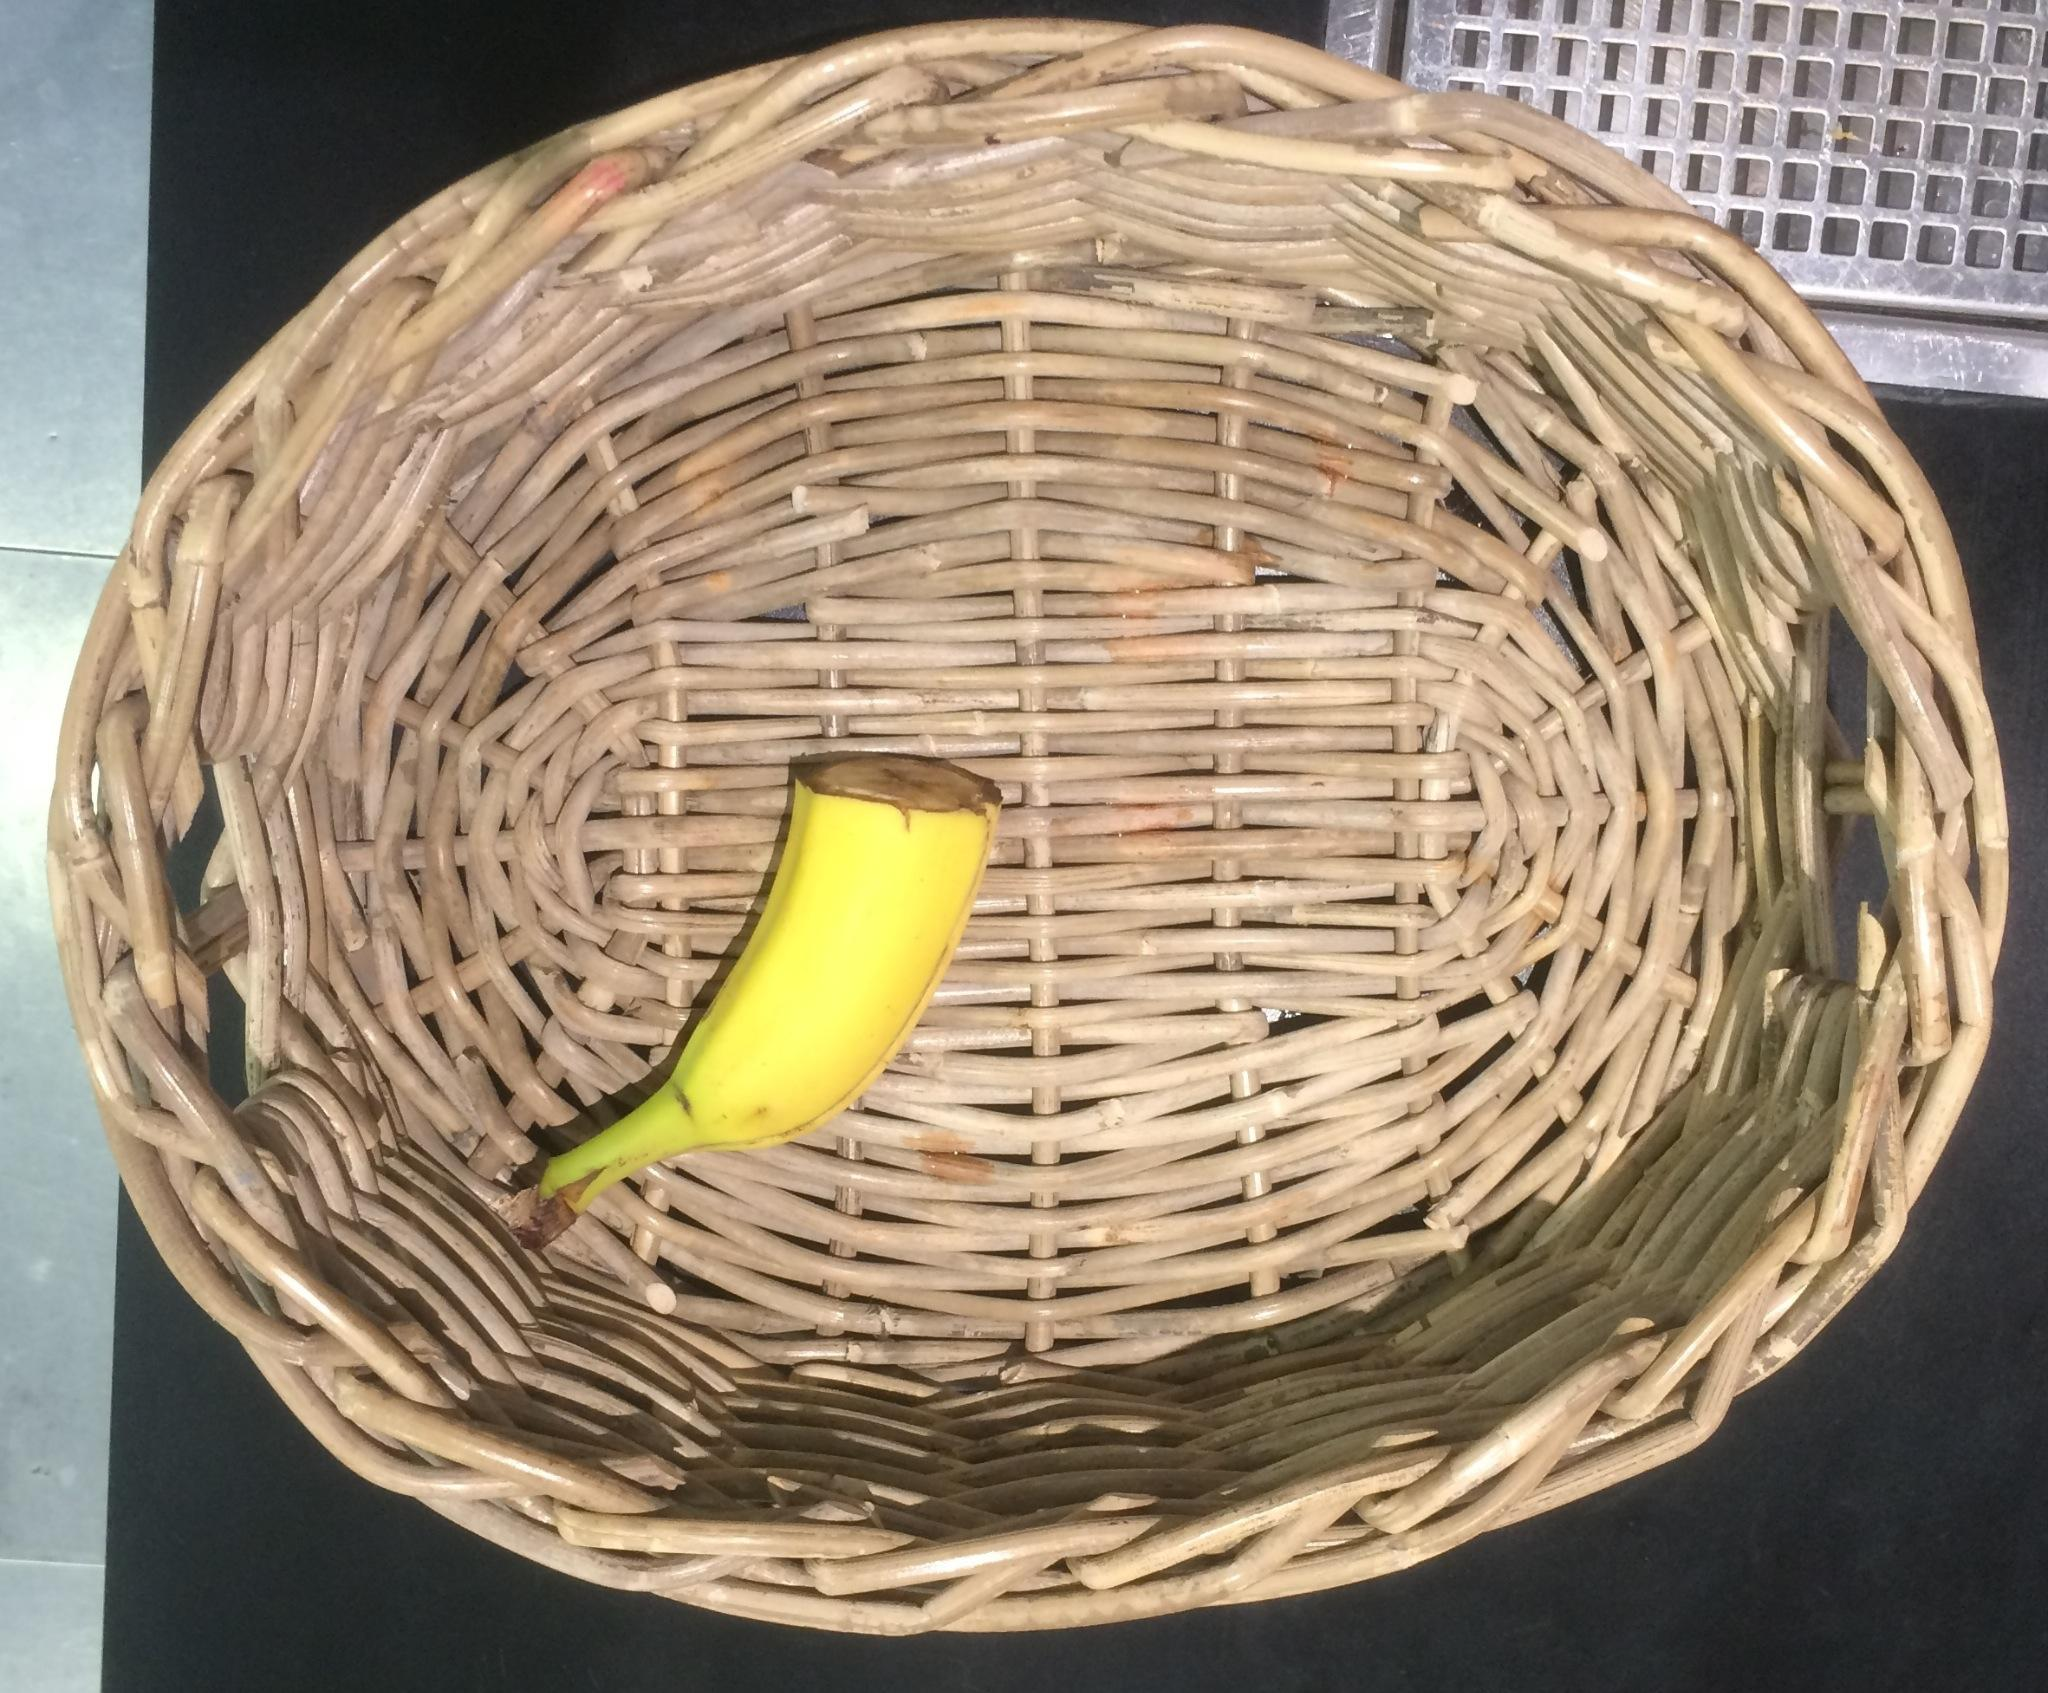 Err, not sure who is decapitating bananas in the fruit bowl every day - may be frugal but not tempting! #bananarific http://t.co/fvaMU21XNk